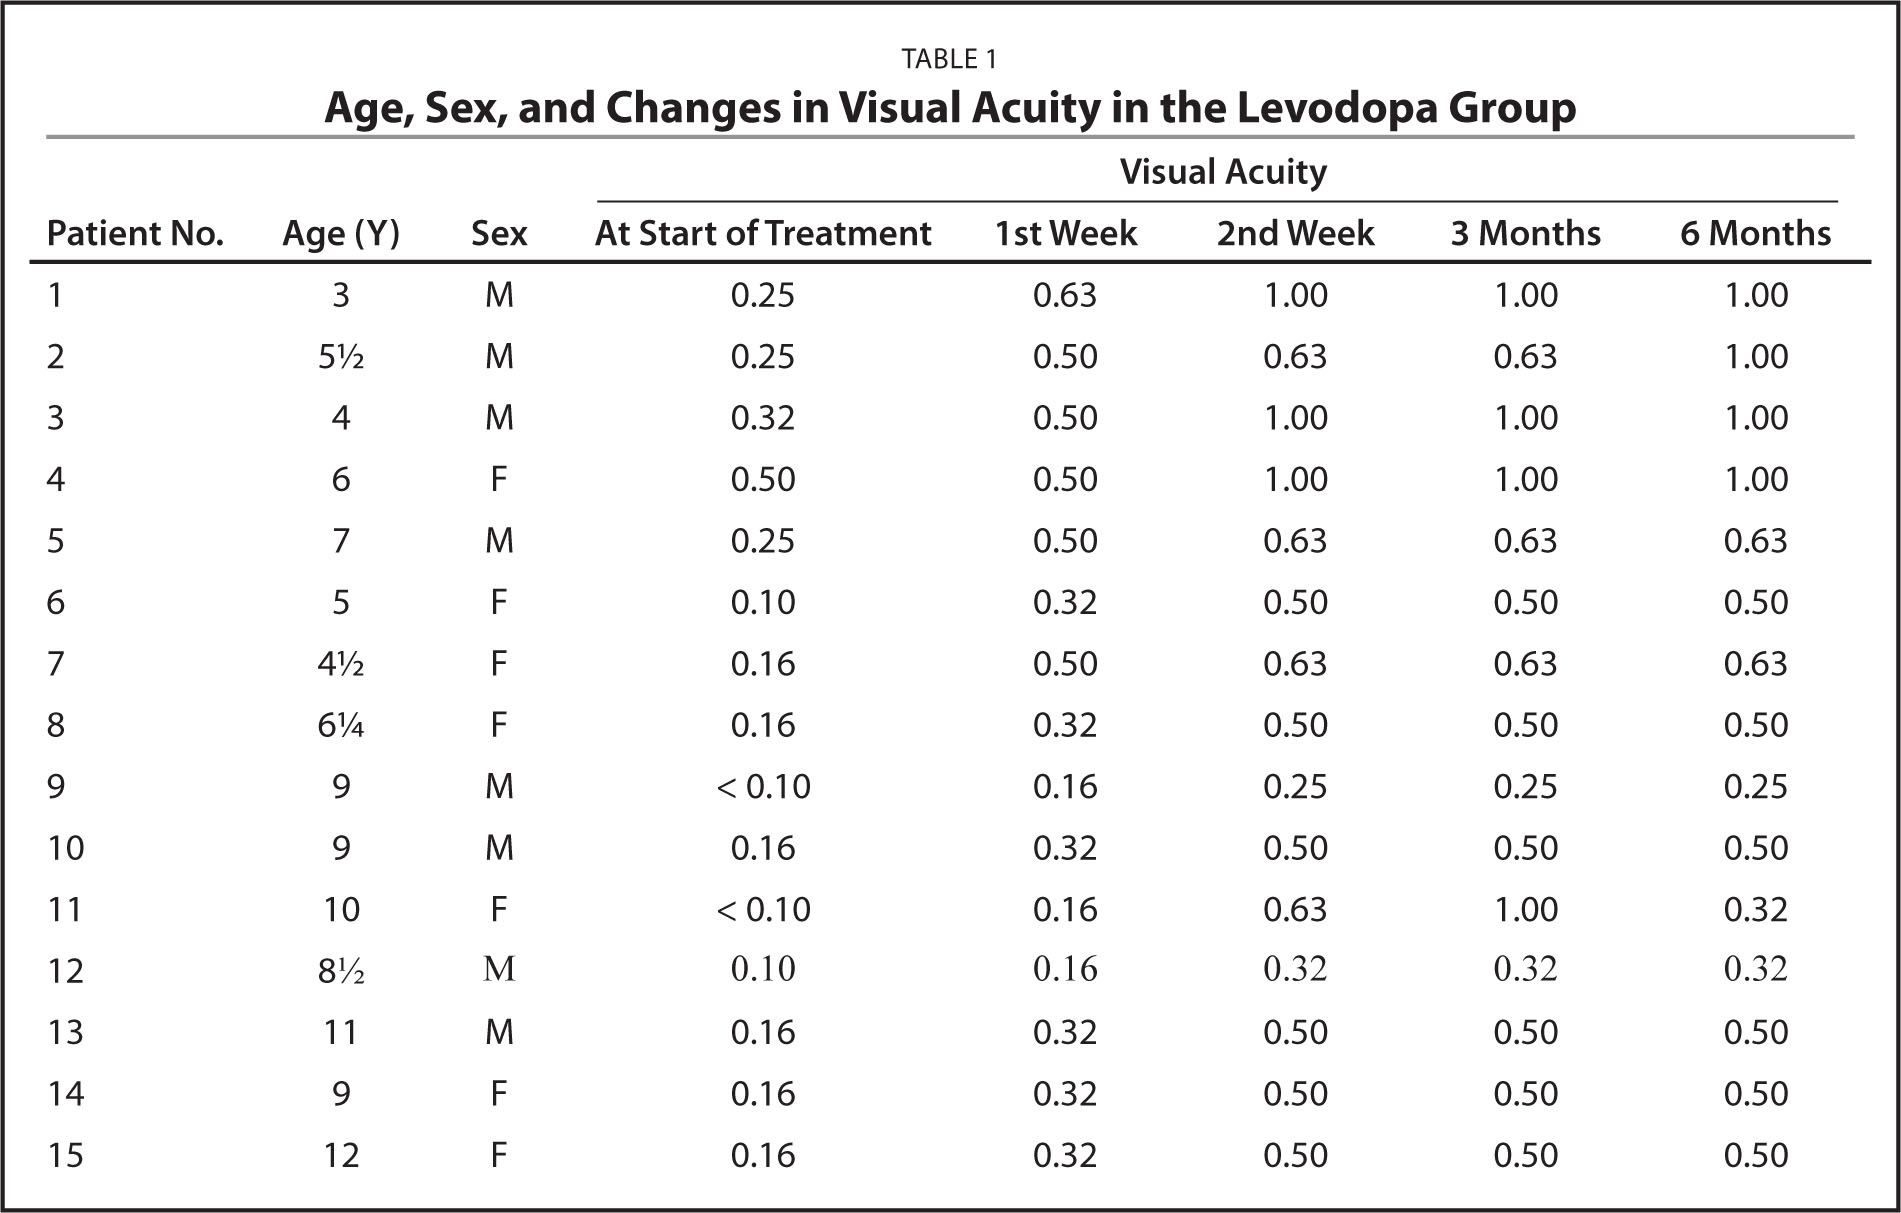 Age, Sex, and Changes in Visual Acuity in the Levodopa Group